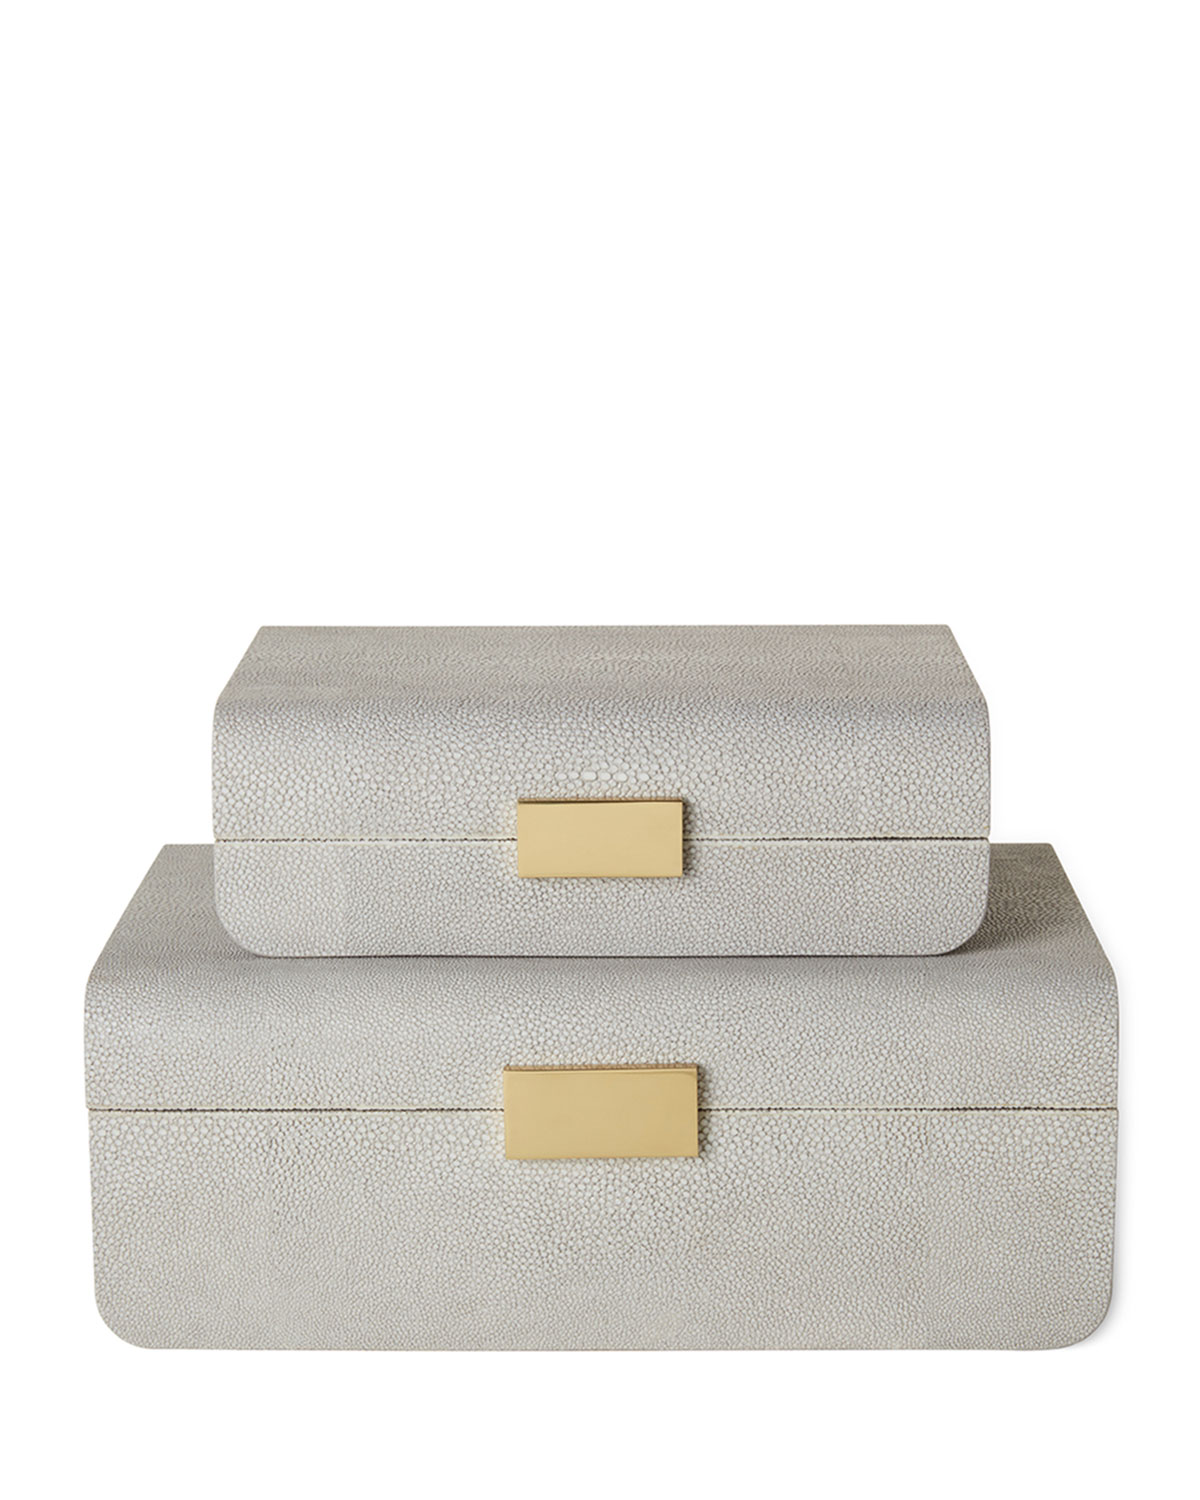 Aerin SMALL MOD SHAGREEN JEWELRY BOX